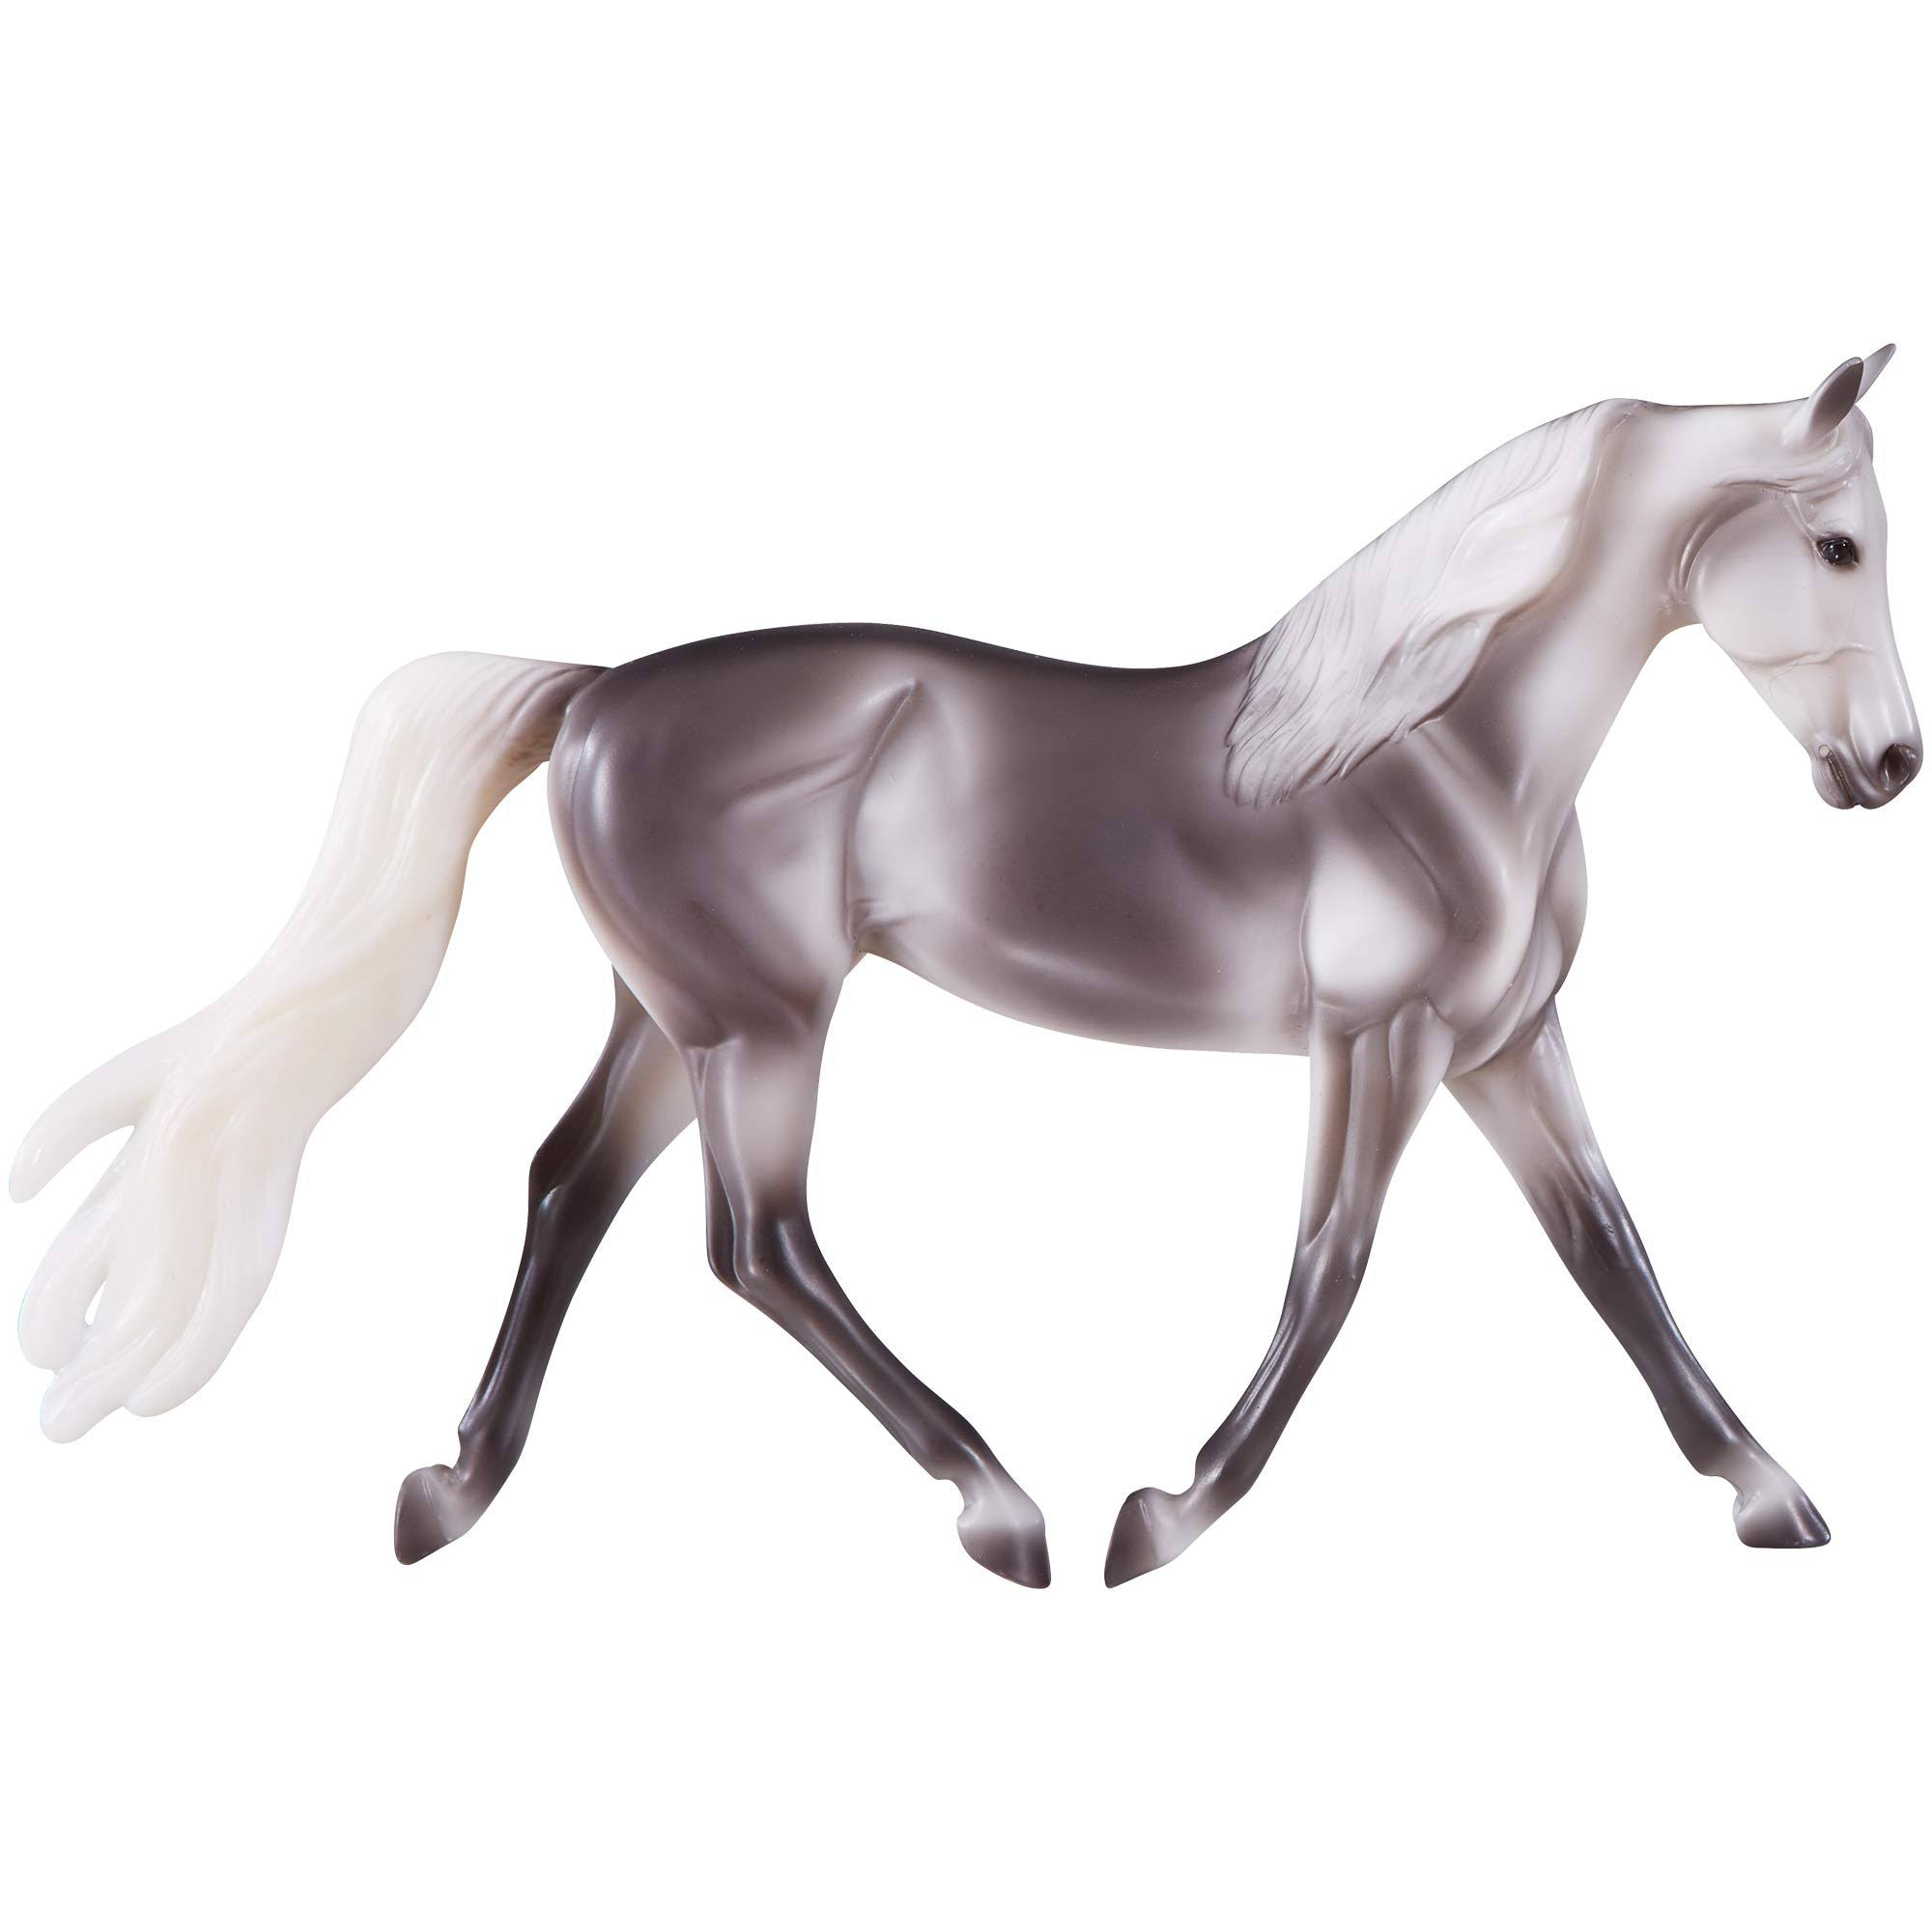 Breyer Grey Saddlebred Horse Toy